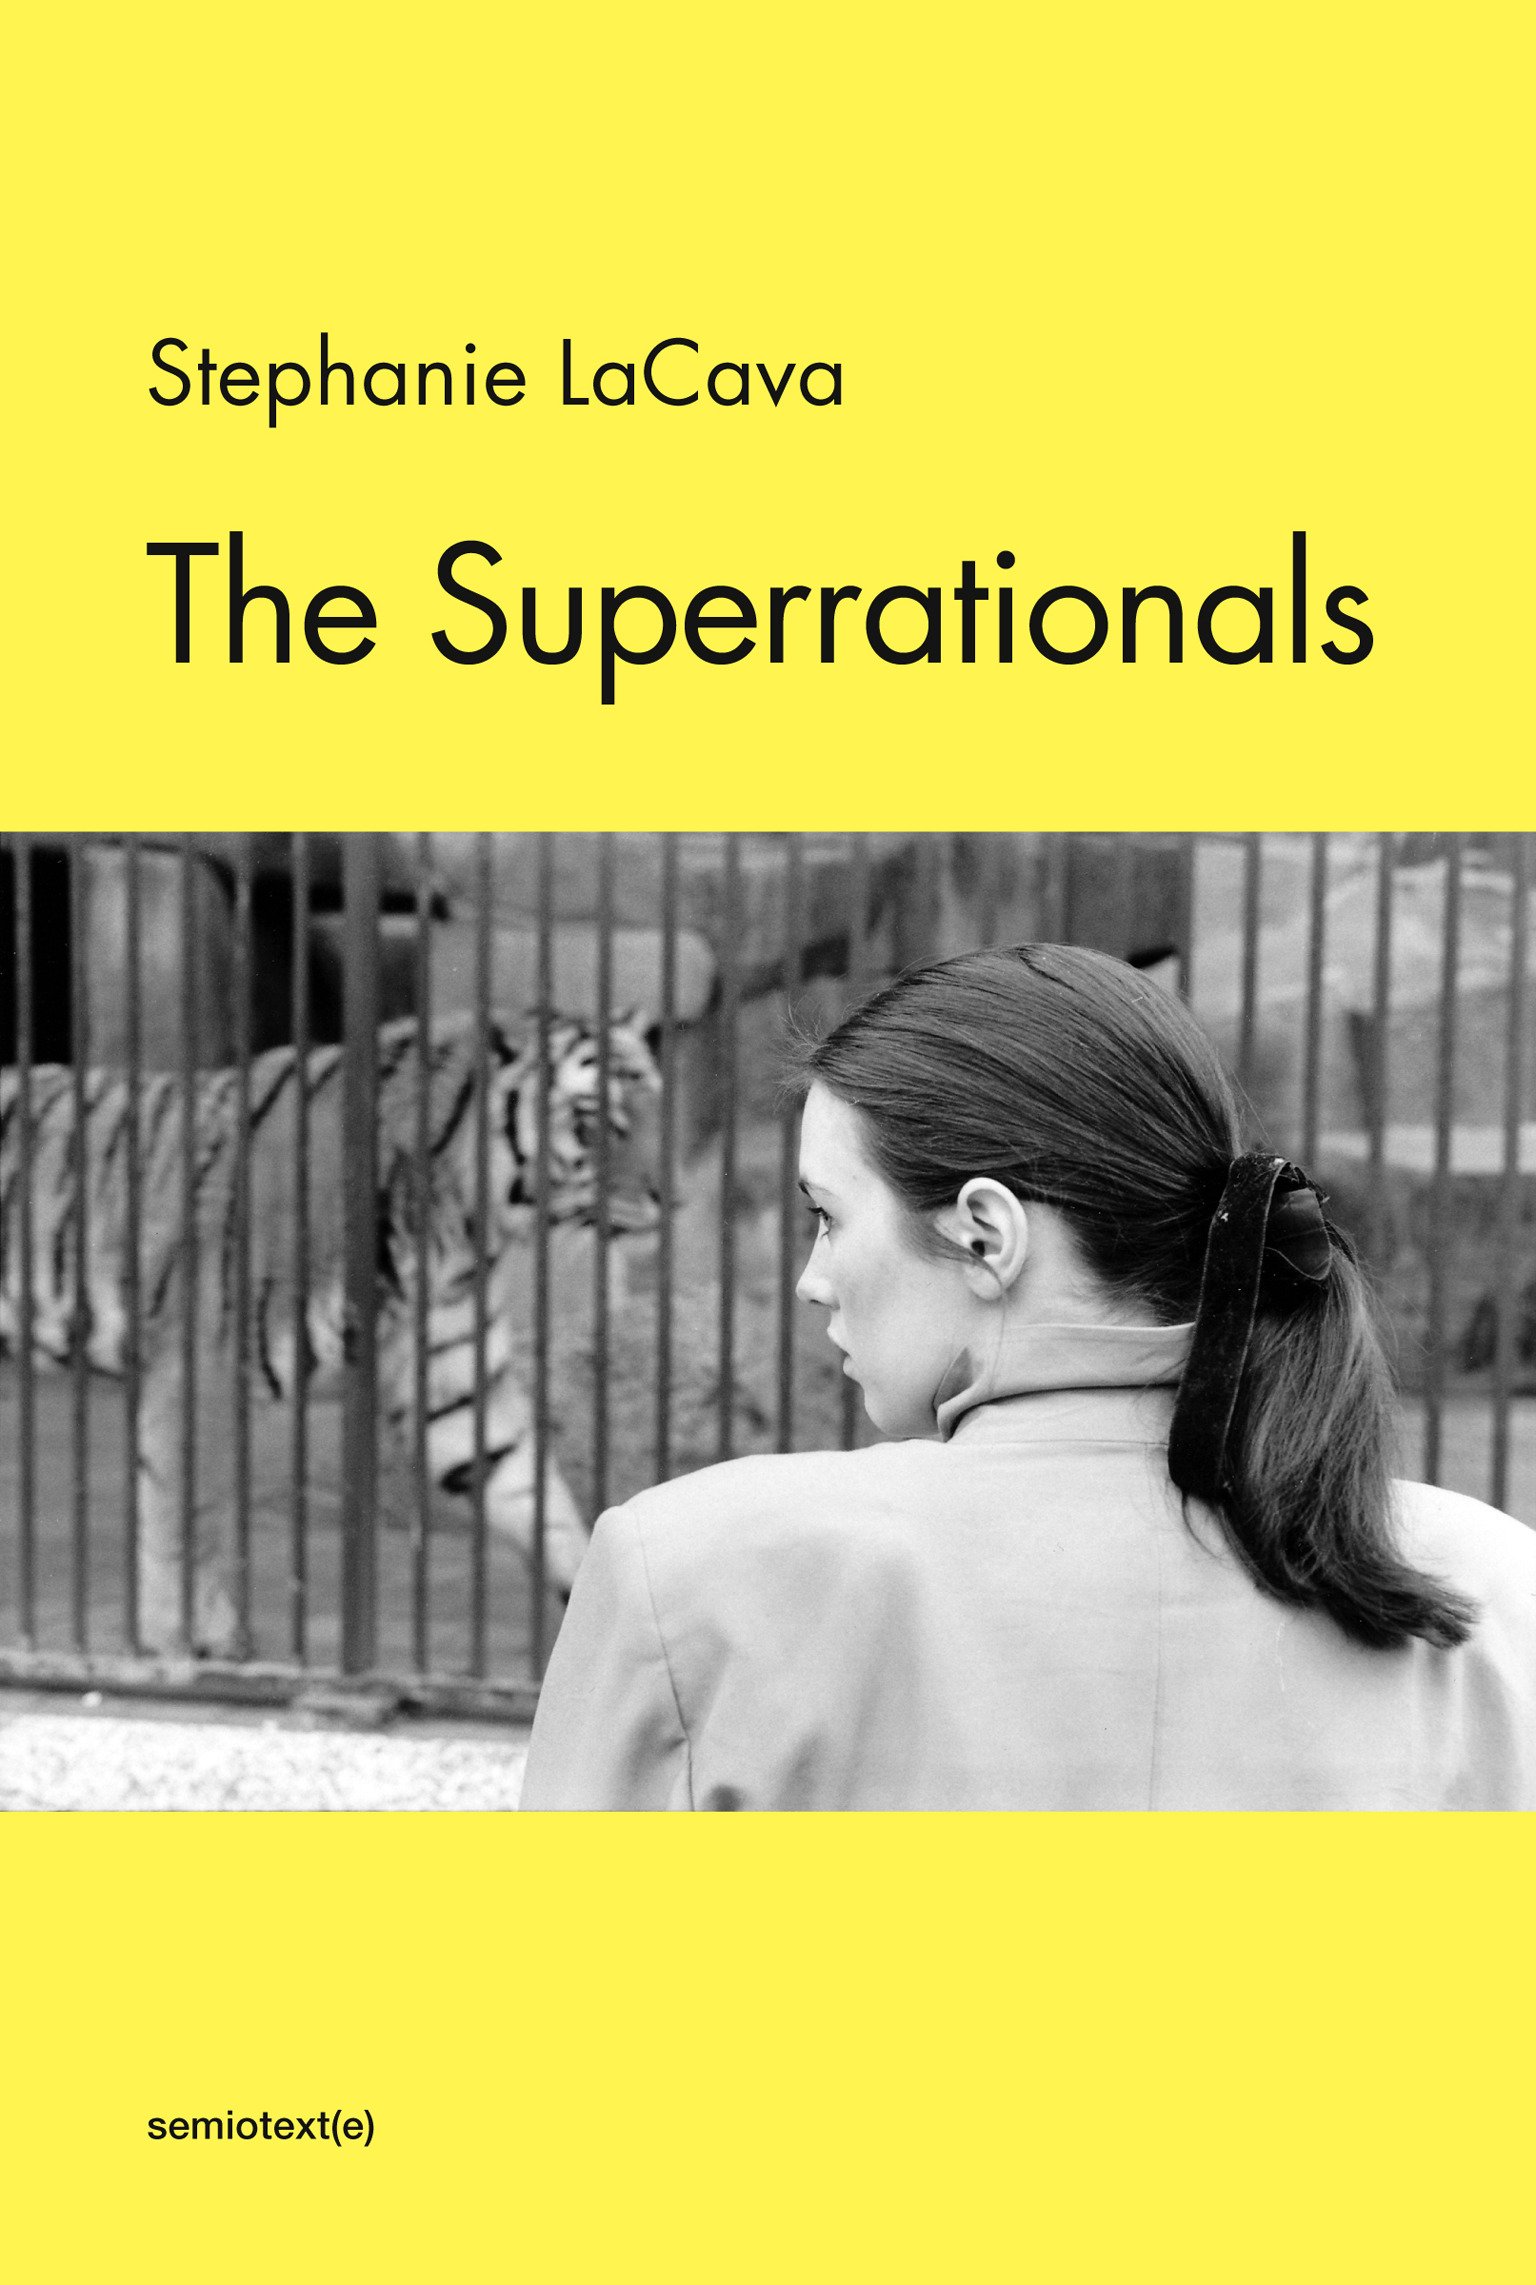 The Superrationals